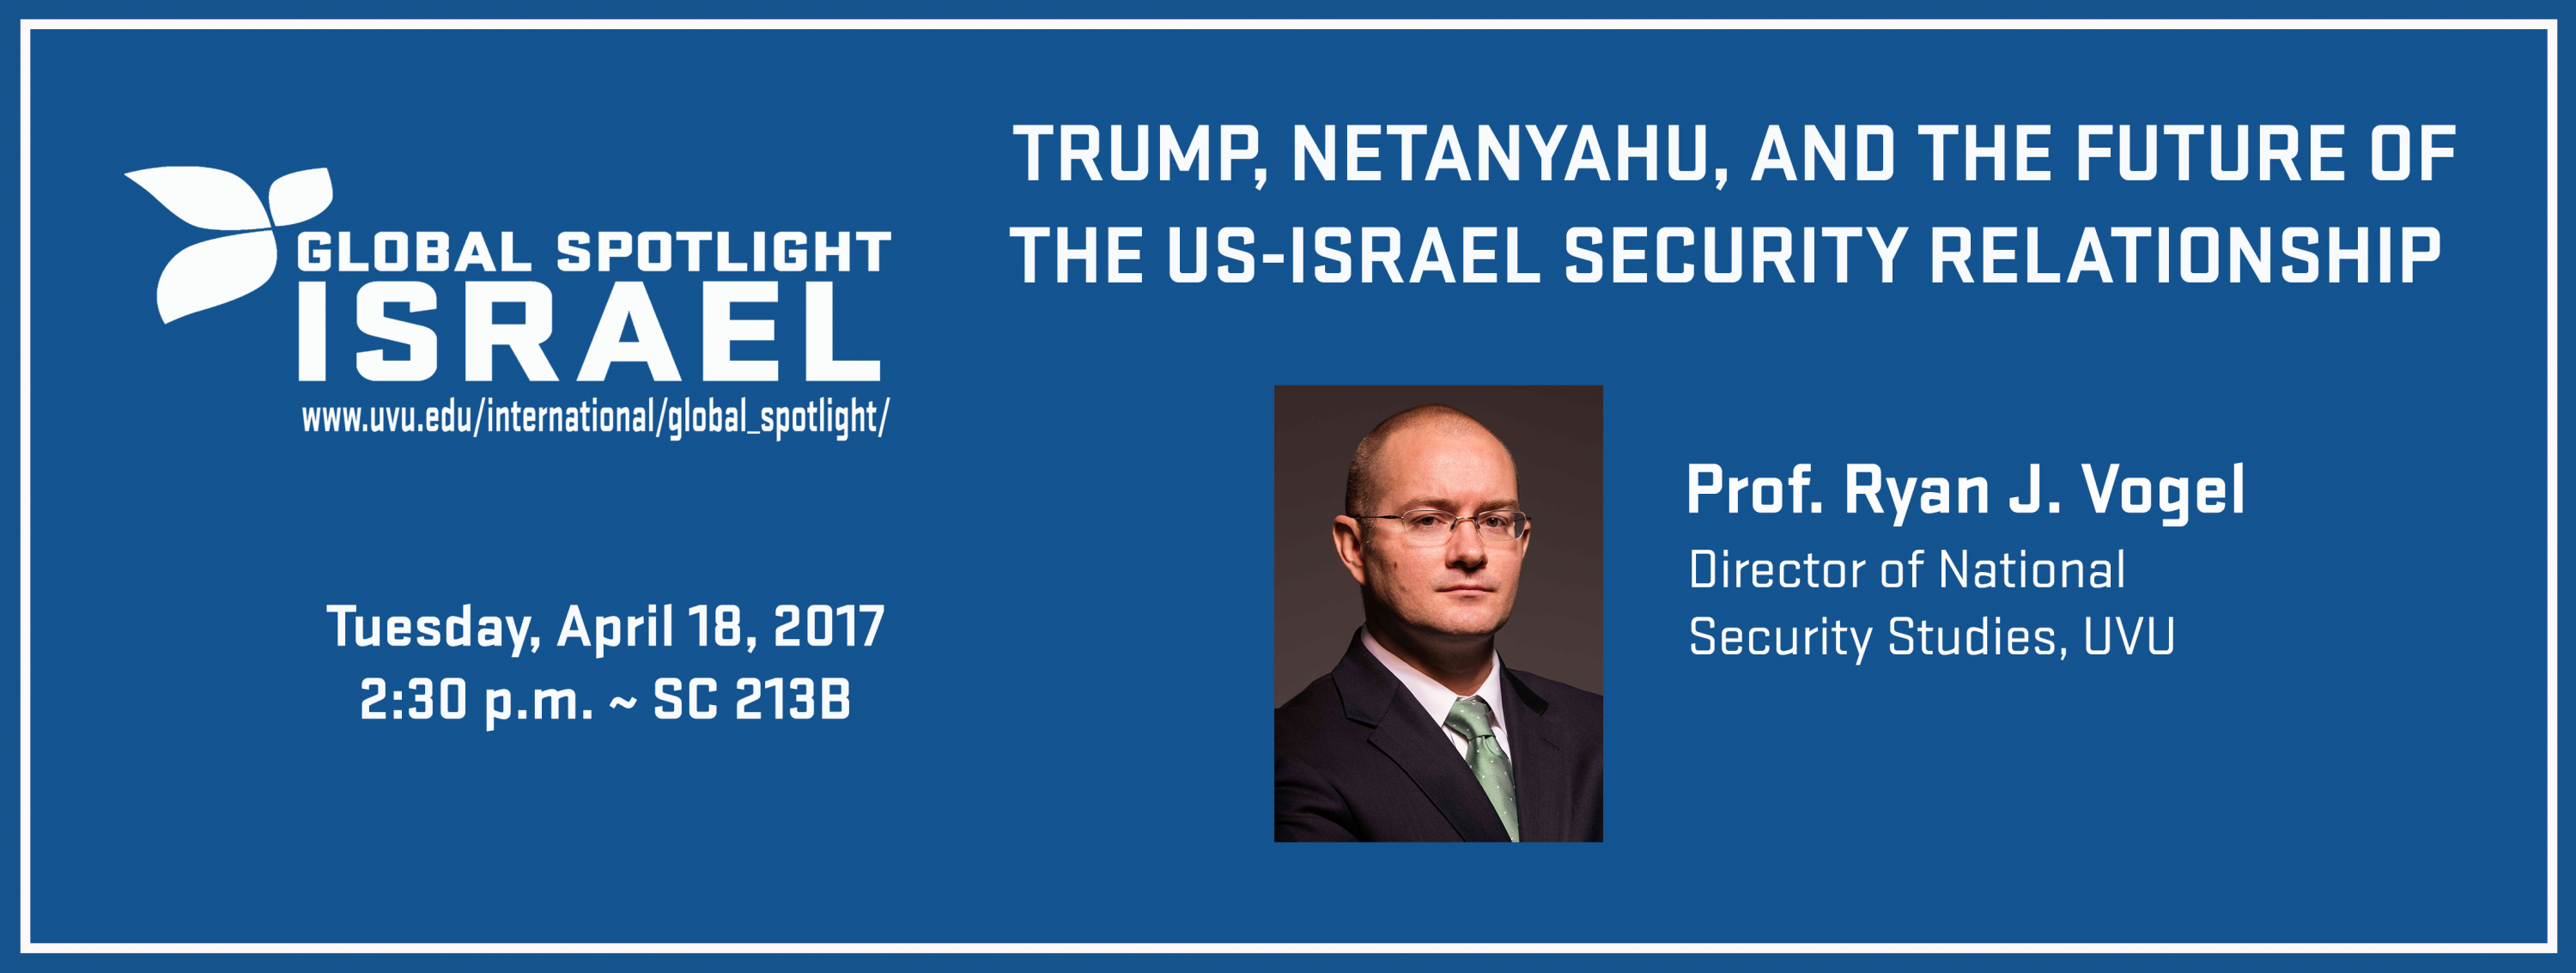 PROF. RYAN J. VOGEL: TRUMP, NETANYAHU, AND THE FUTURE OF THE US-ISRAEL SECURITY RELATIONSHIP